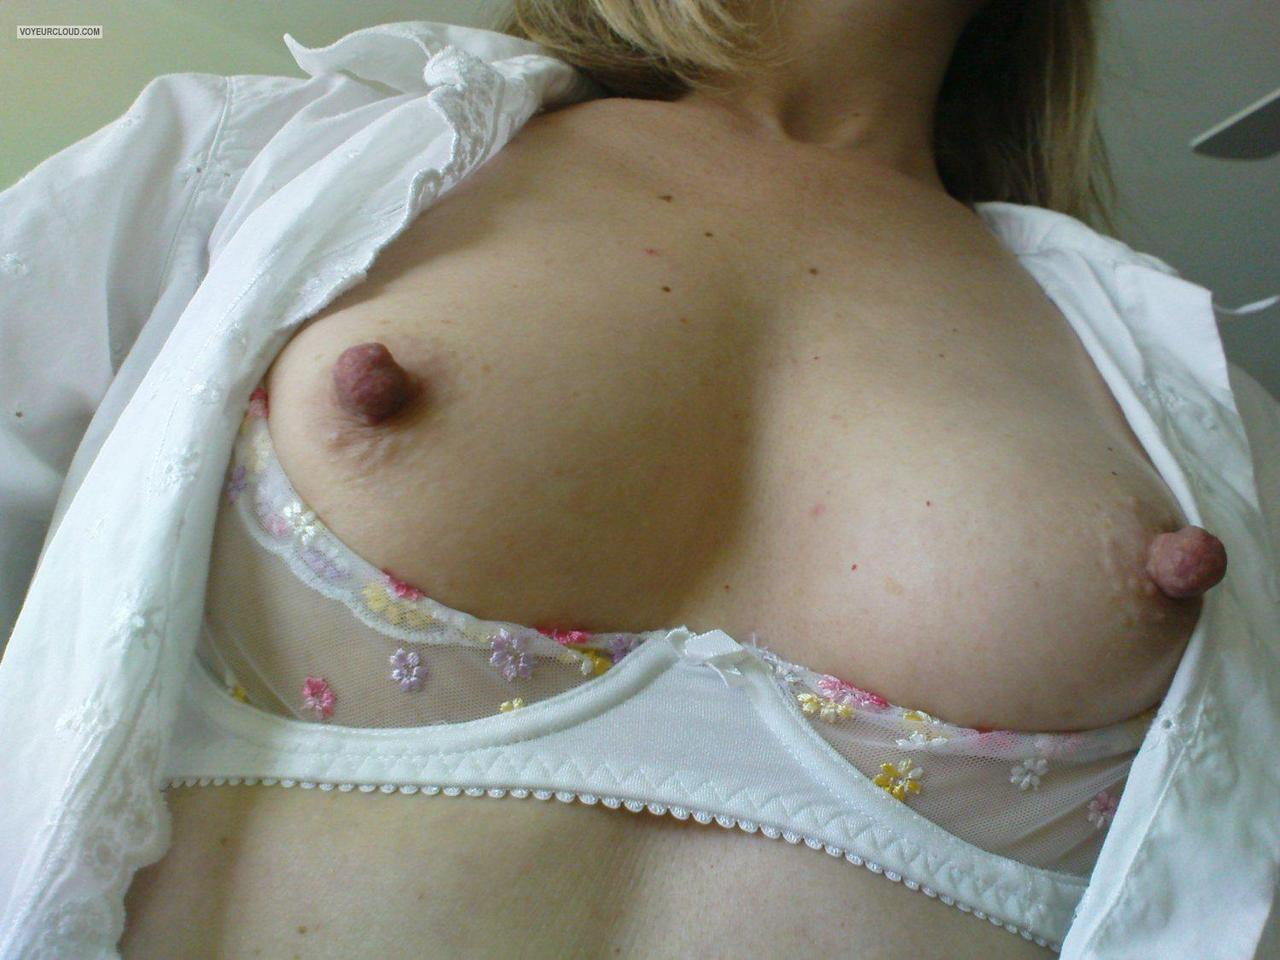 Girls with big tits hard erect nipples